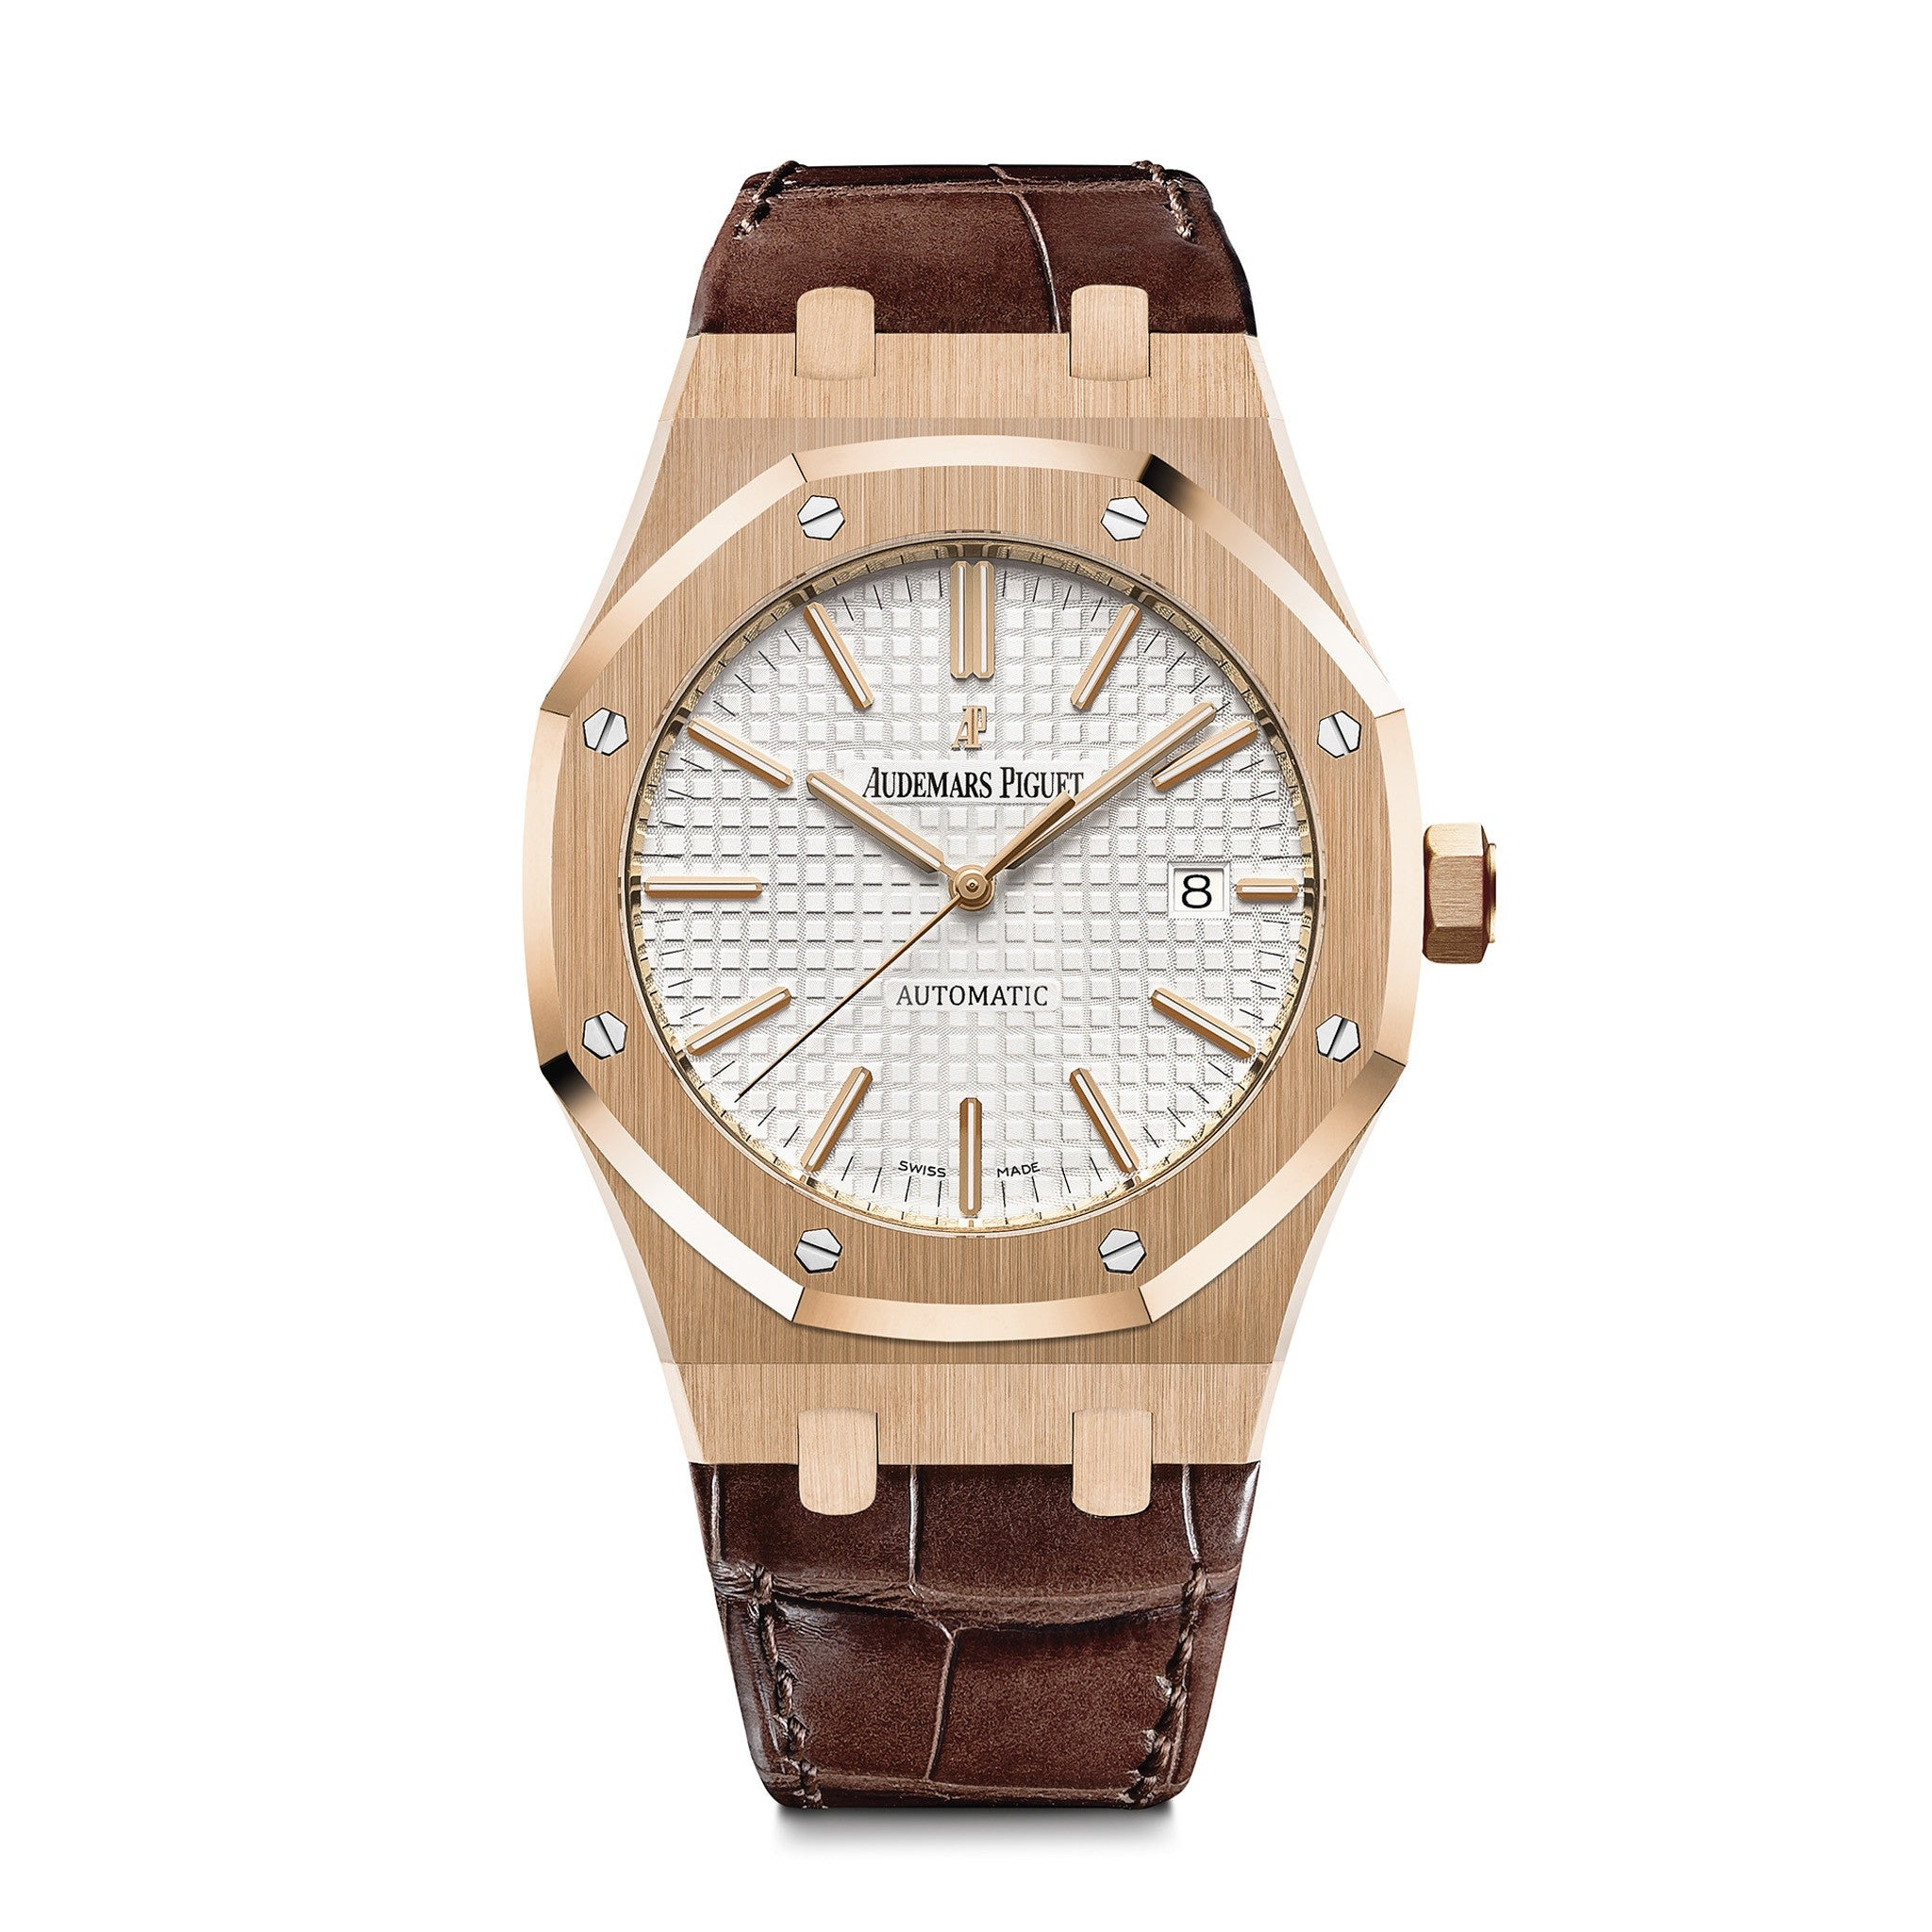 Royal Oak Selfwinding 15400OR.OO.D088CR.01 - Audemars Piguet